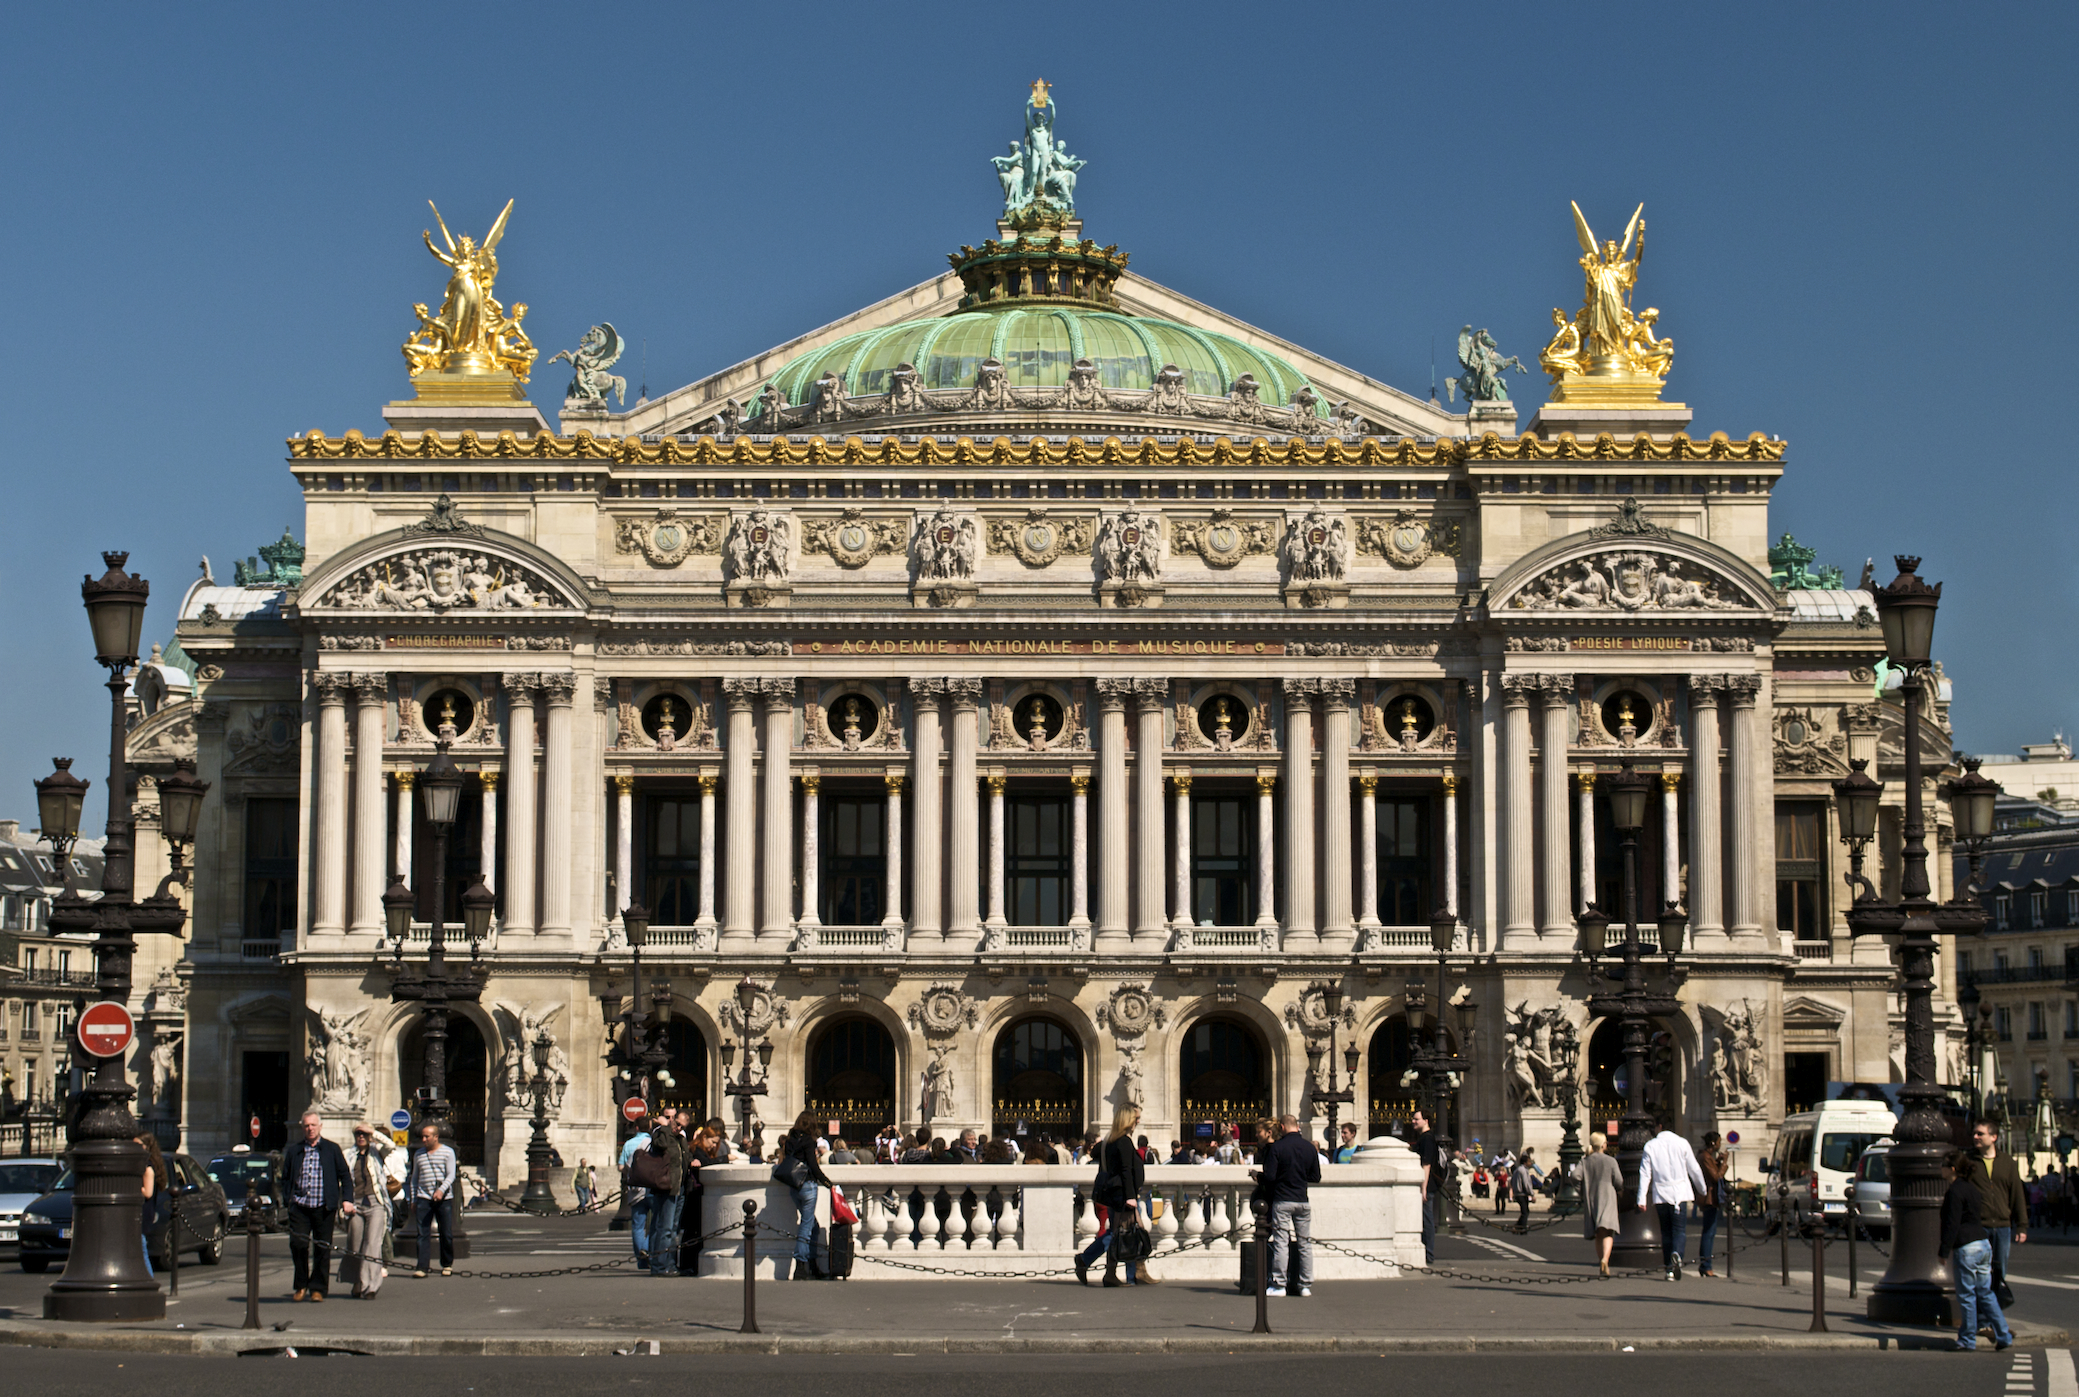 62/OPERA/Paris_Opera_full_frontal_architecture_May_2009.jpg